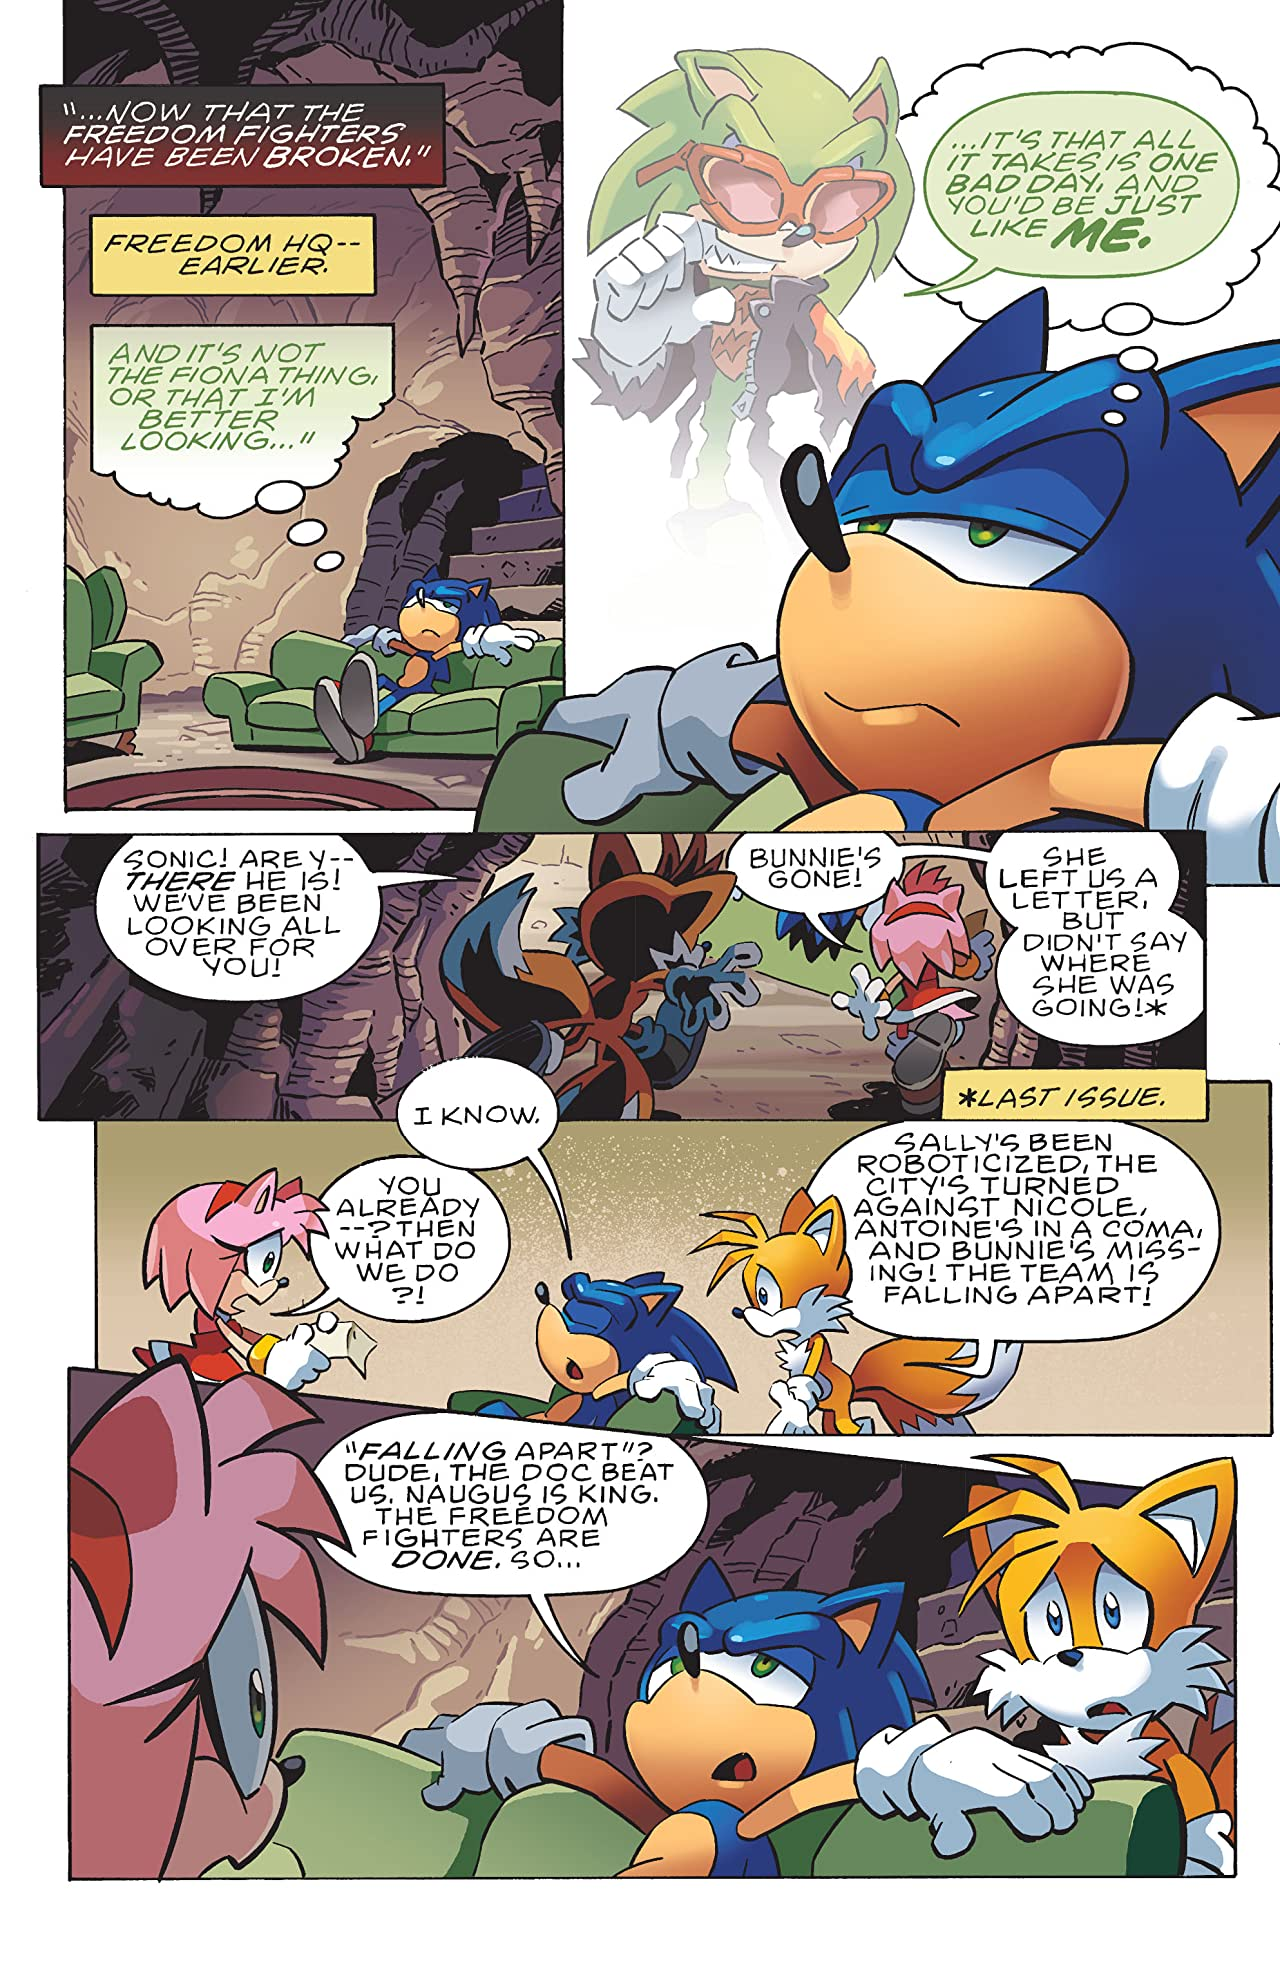 Sonic the Hedgehog #236